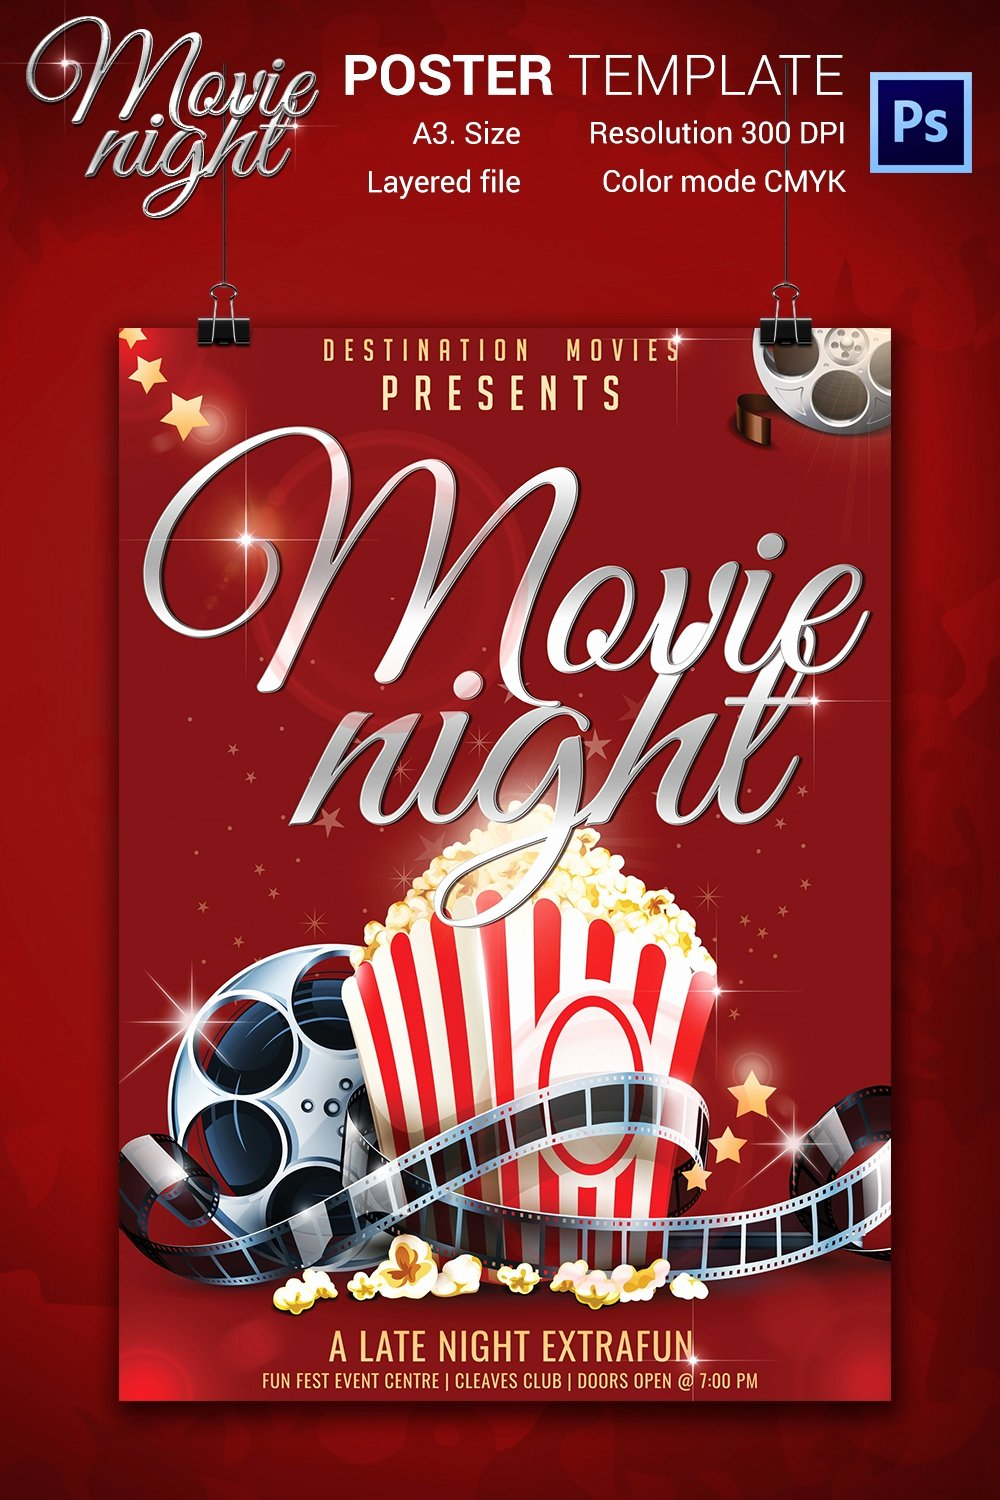 Movie Night Flyer Templates Fresh Movie Night Flyer Template 25 Free Jpg Psd format Download